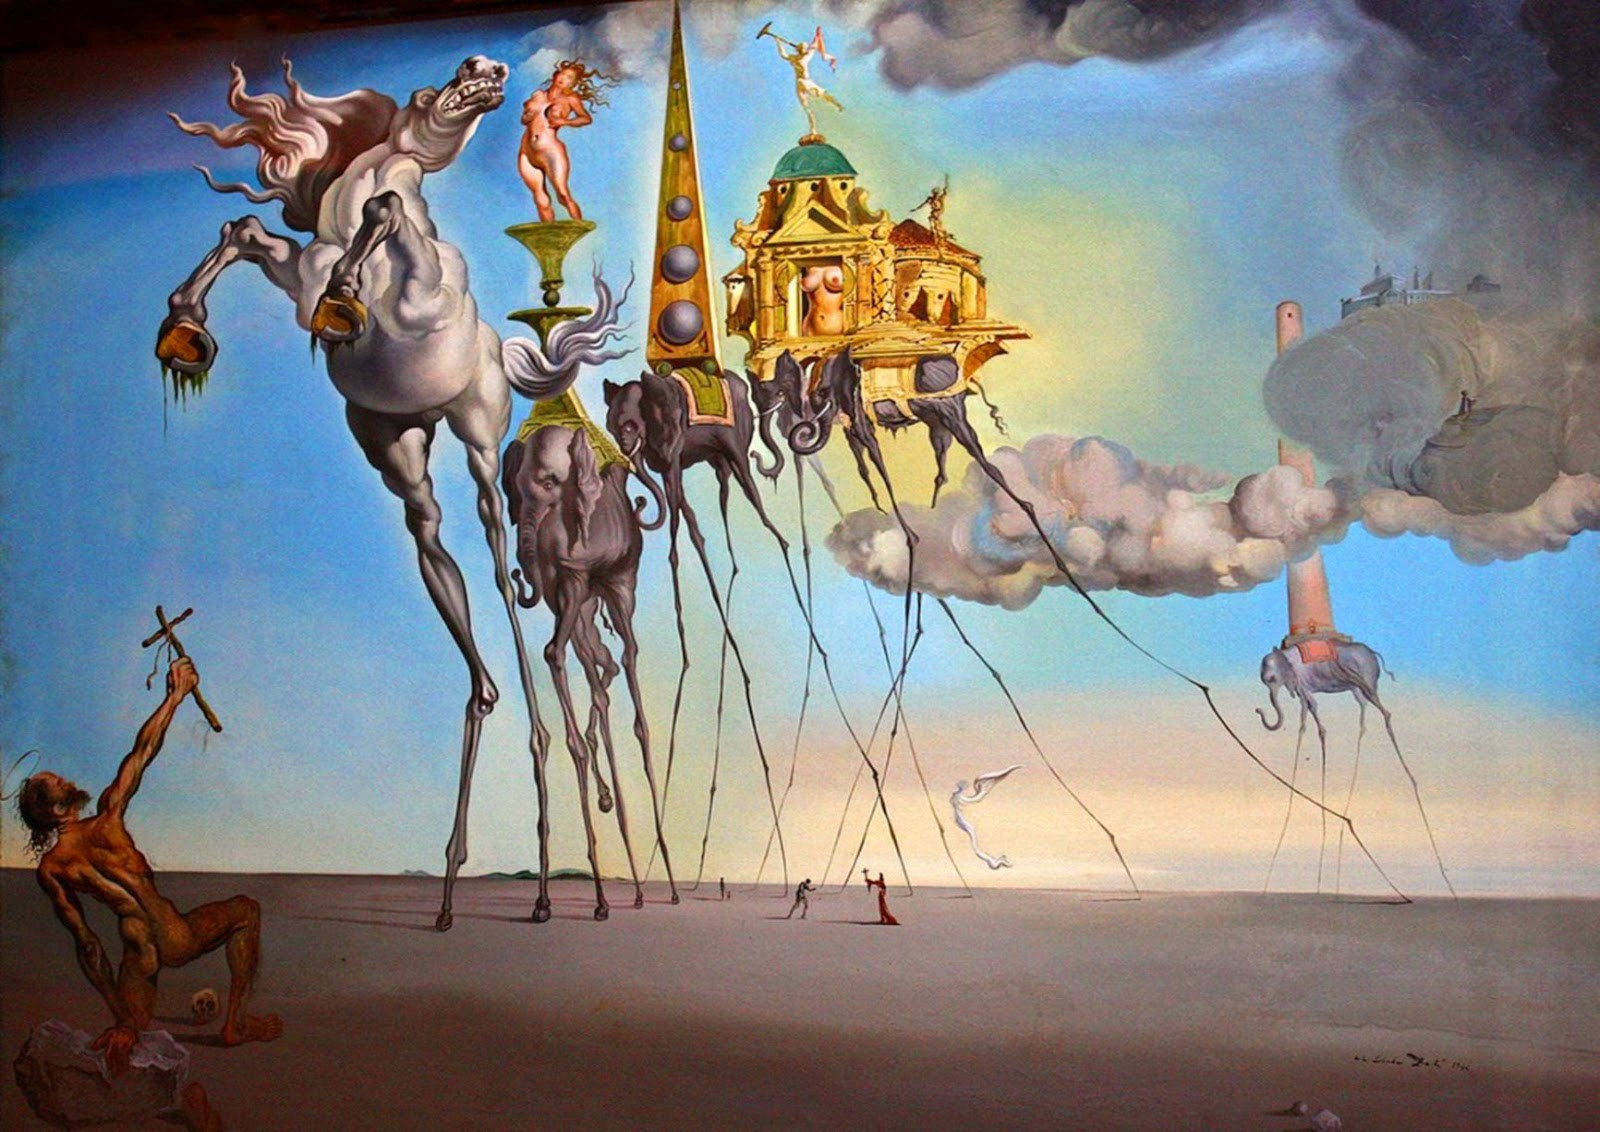 Surrealism in the Art of Dali. Salvador Dali was a leading 20th ...